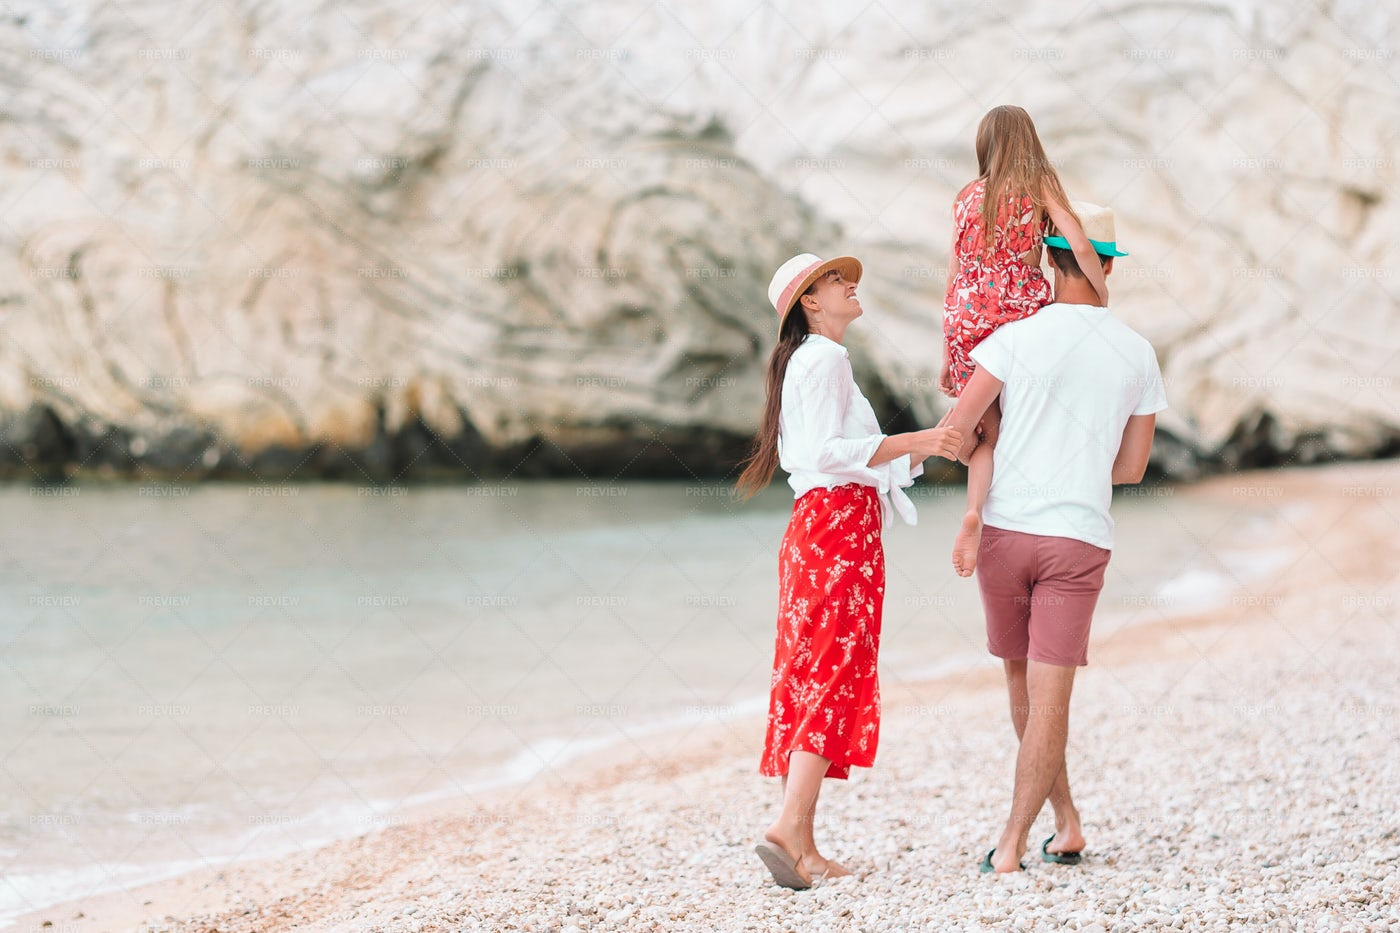 Young Family Walking On Beach: Stock Photos